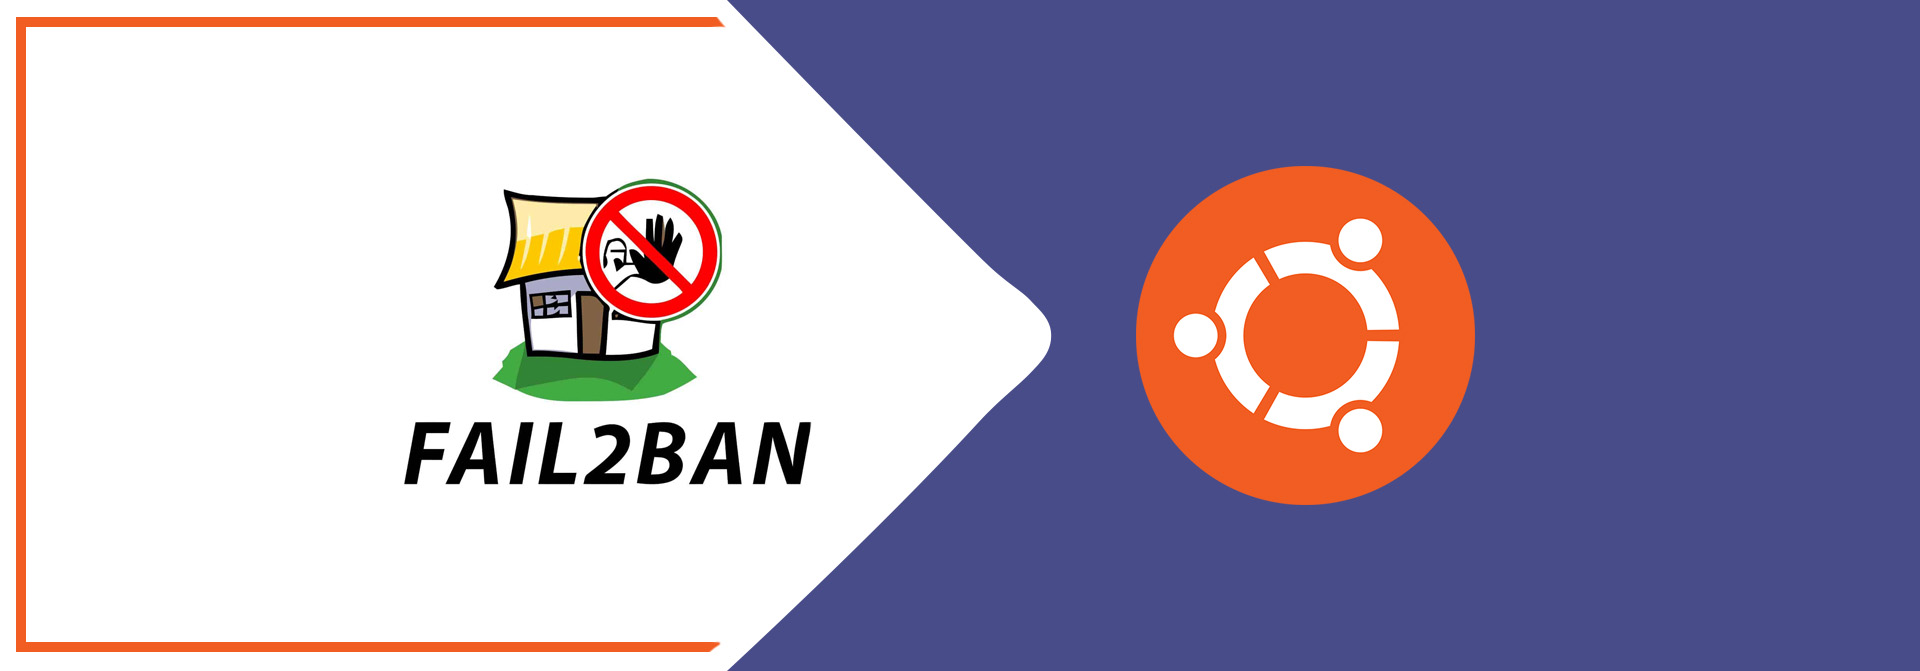 How To Install Fail2ban On Ubuntu 20.04 LTS